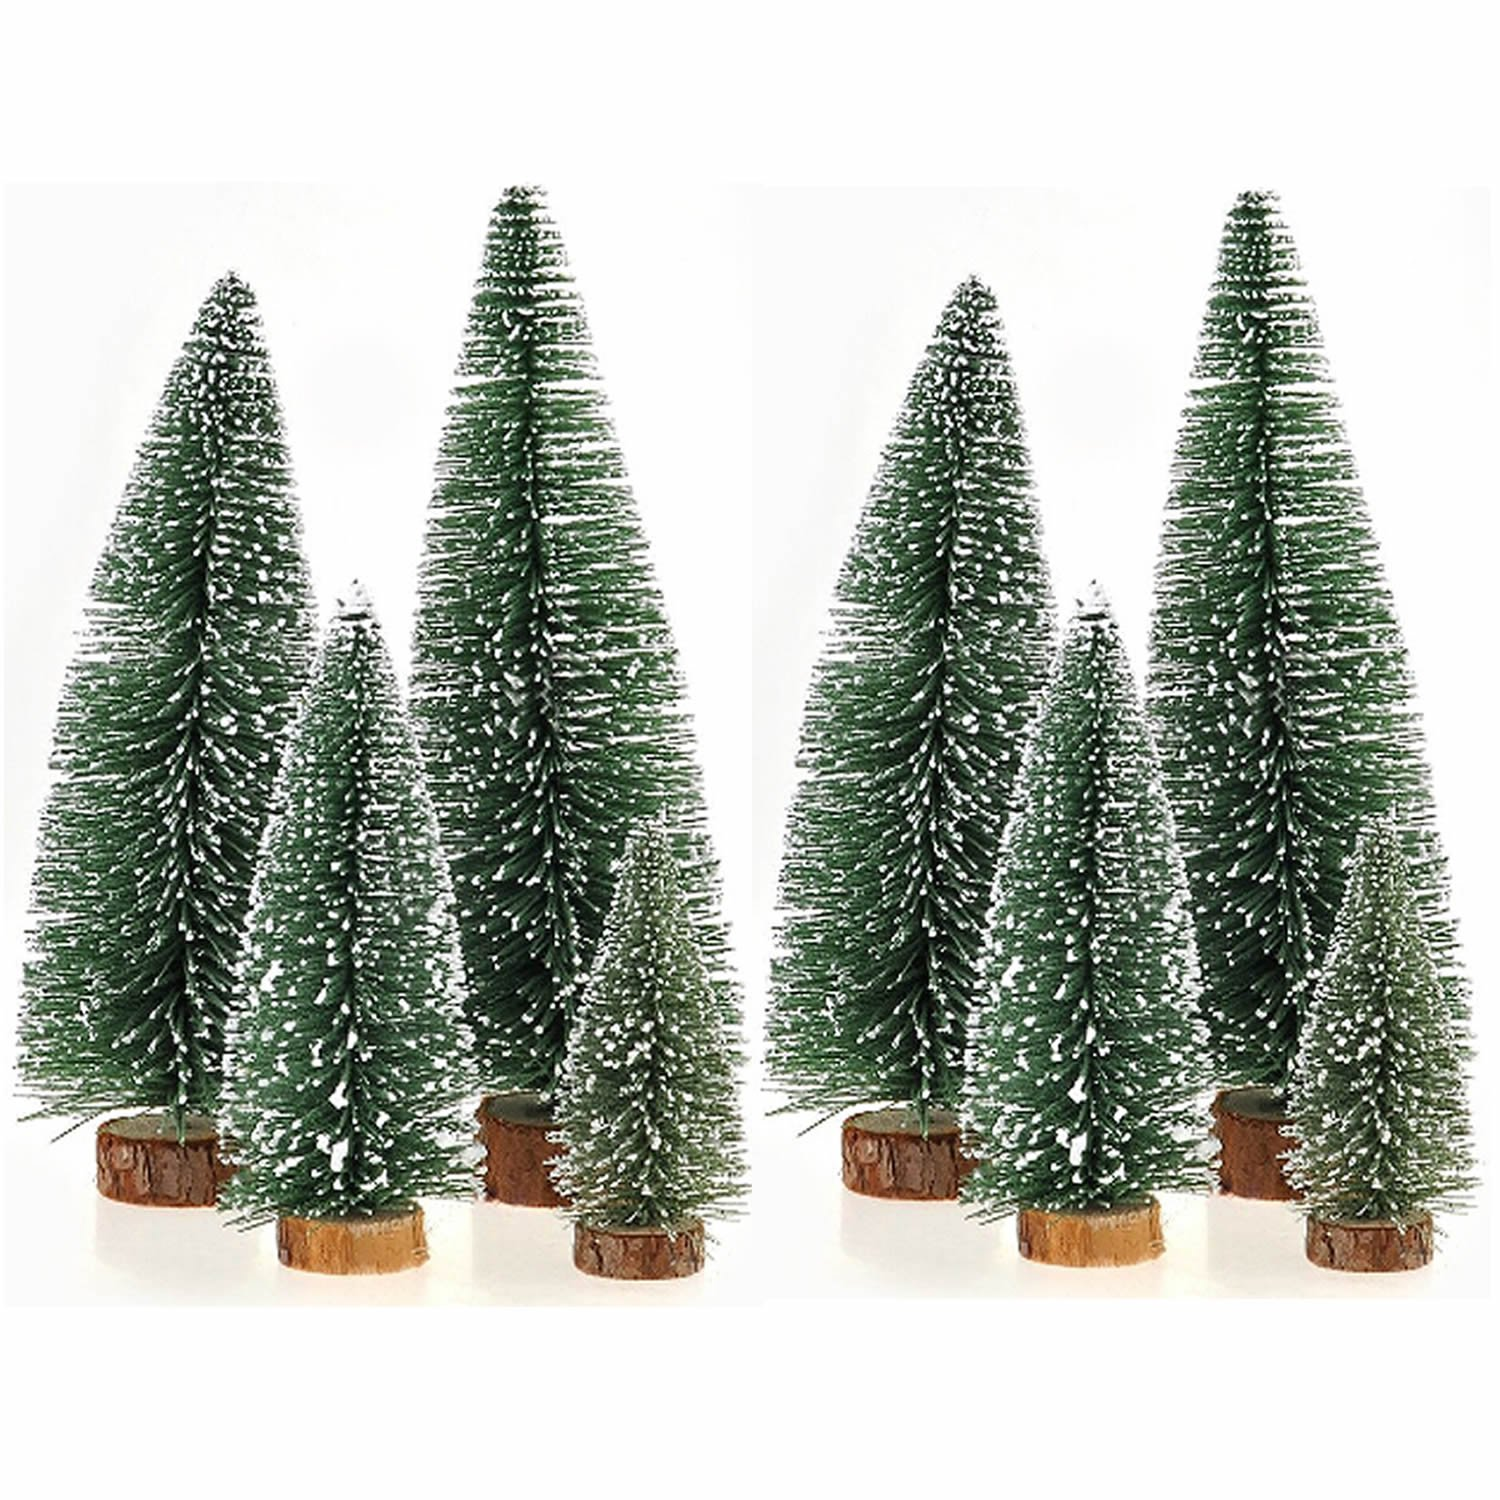 ORYOUGO Factory Direct Craft Set of 8 Artificial Mini Sisal Bottle Brush Christmas Trees Party Decoration Ornaments Santa Snow Frost Village Putz House(4'',6'',7.9'',9.8'') 6'' 7.9'' 9.8'')